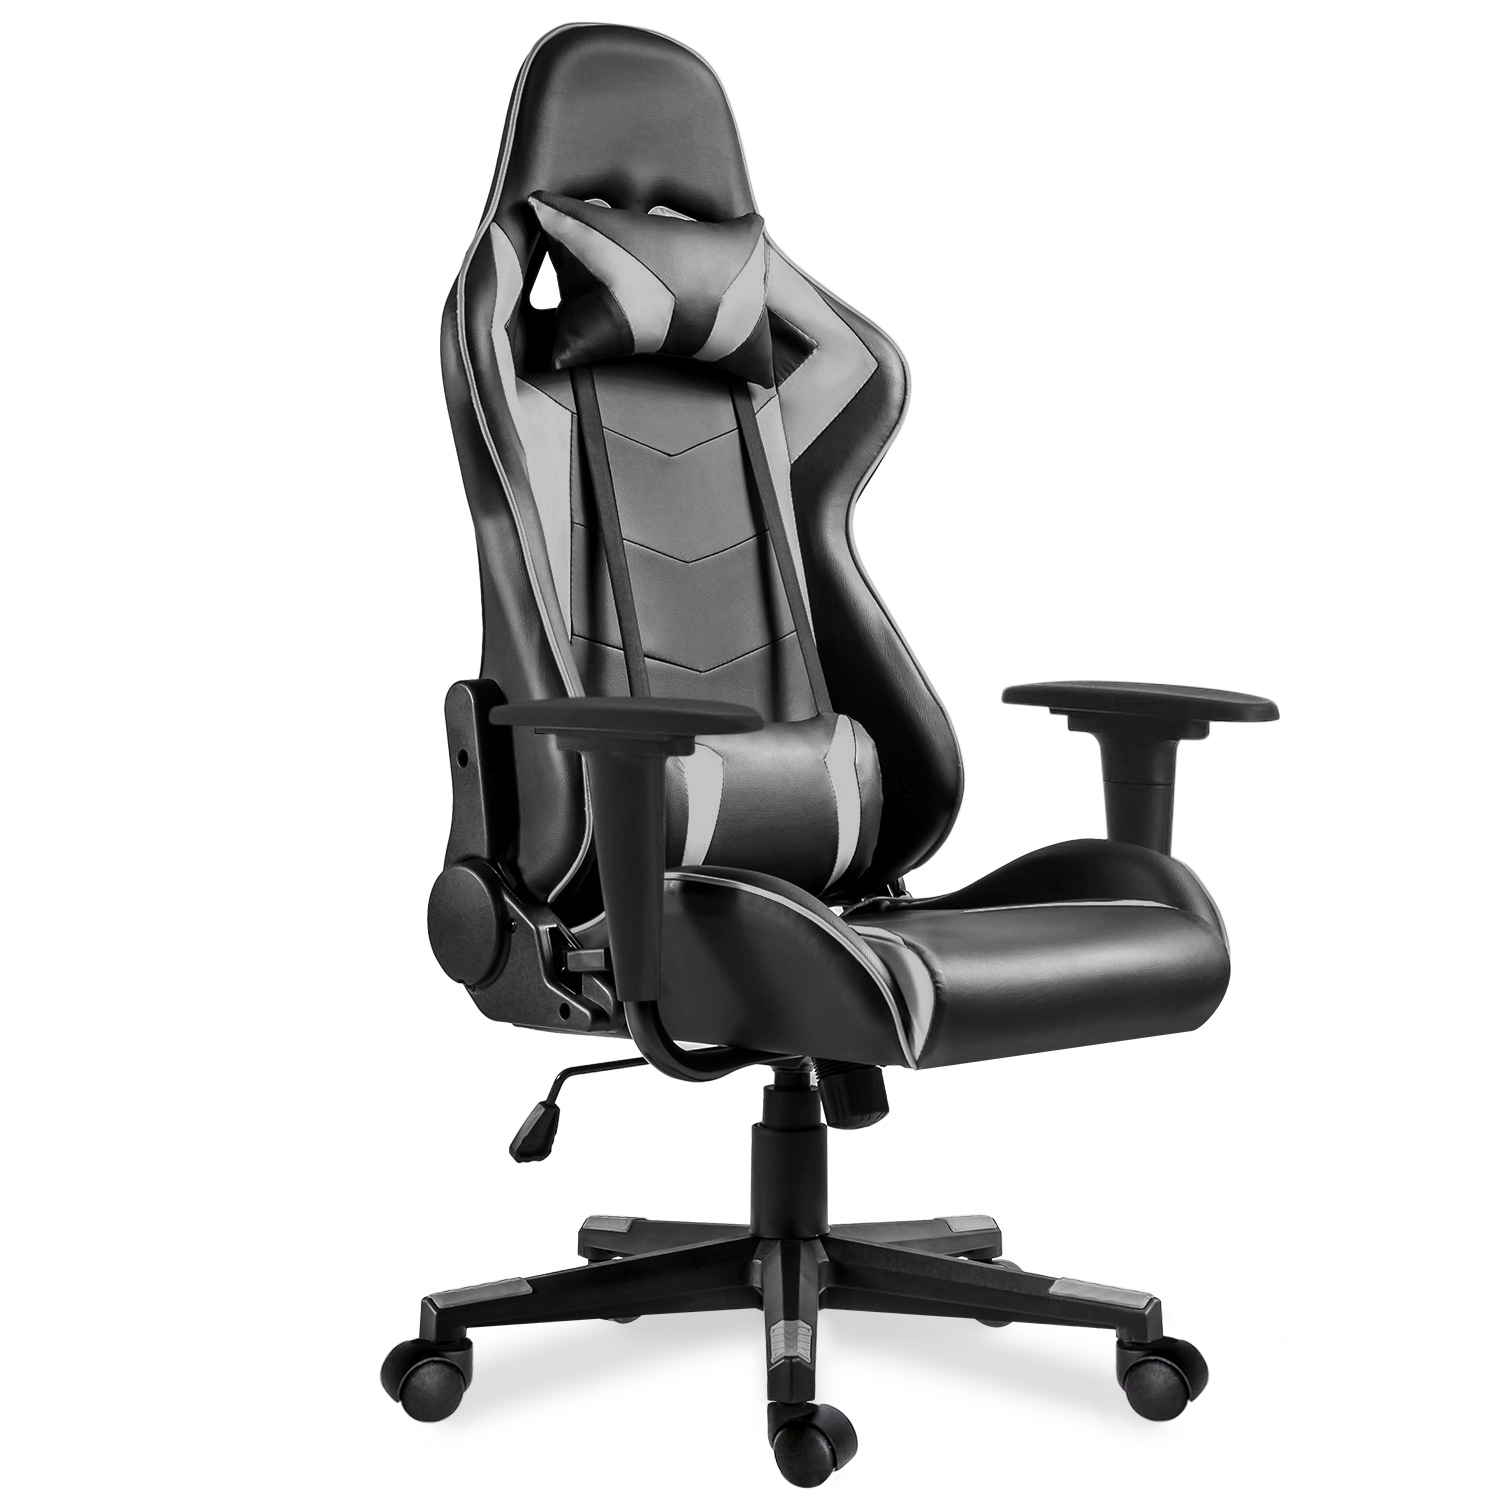 Quality Grey Office Boss Chair Ergonomic Computer Gaming Chair Internet Cafe Seat Household Reclining Chair PU Leather Chair